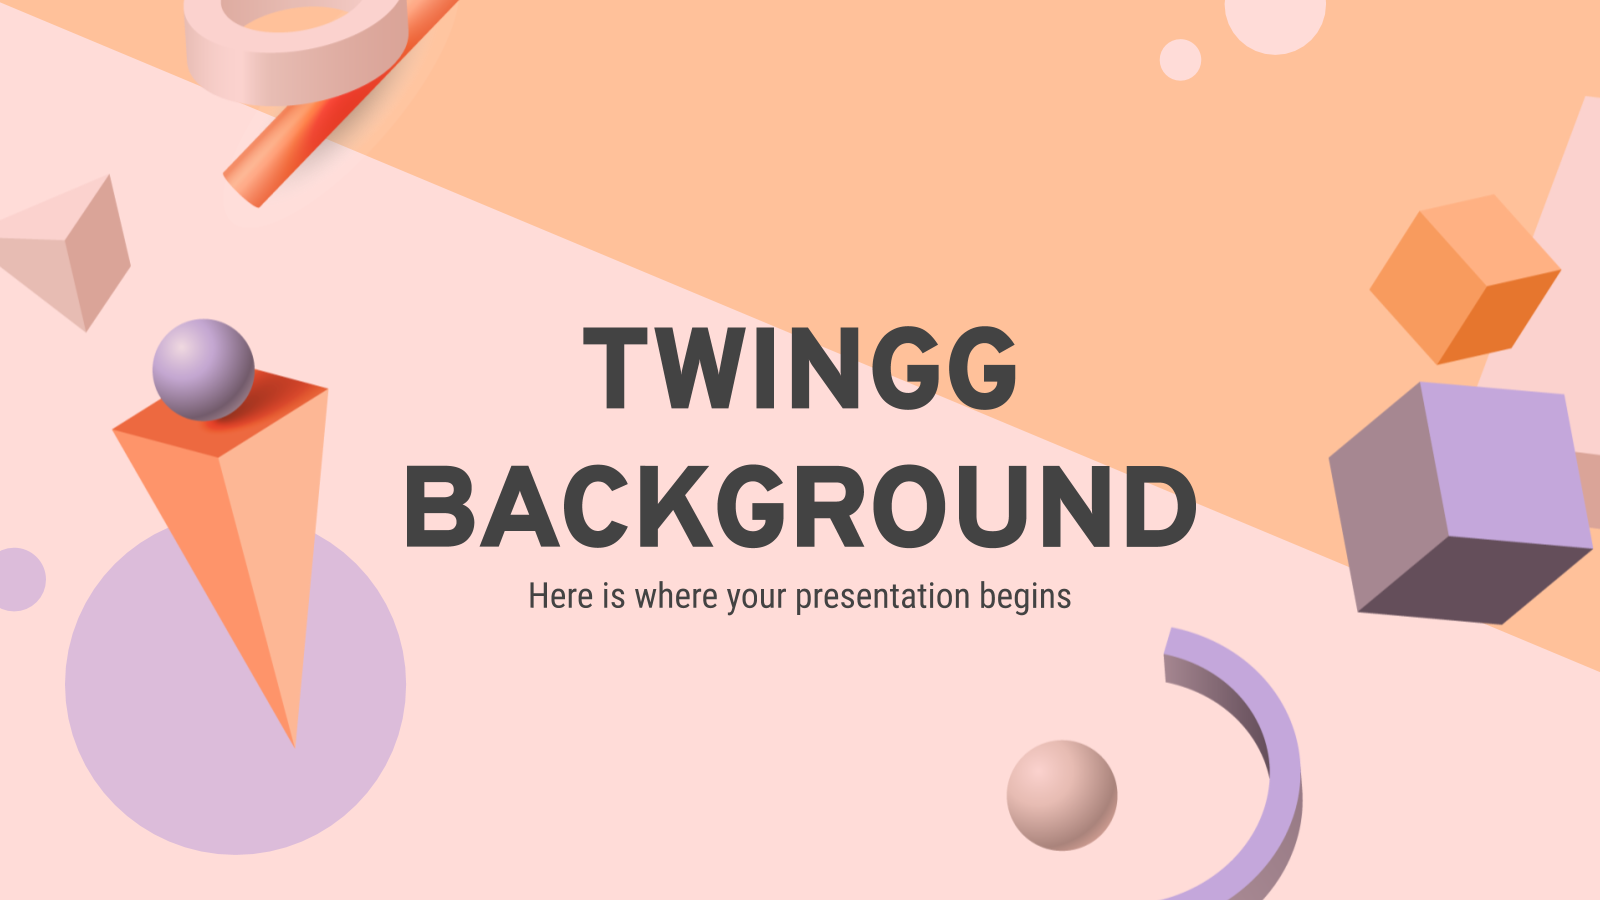 Twingg Background presentation template